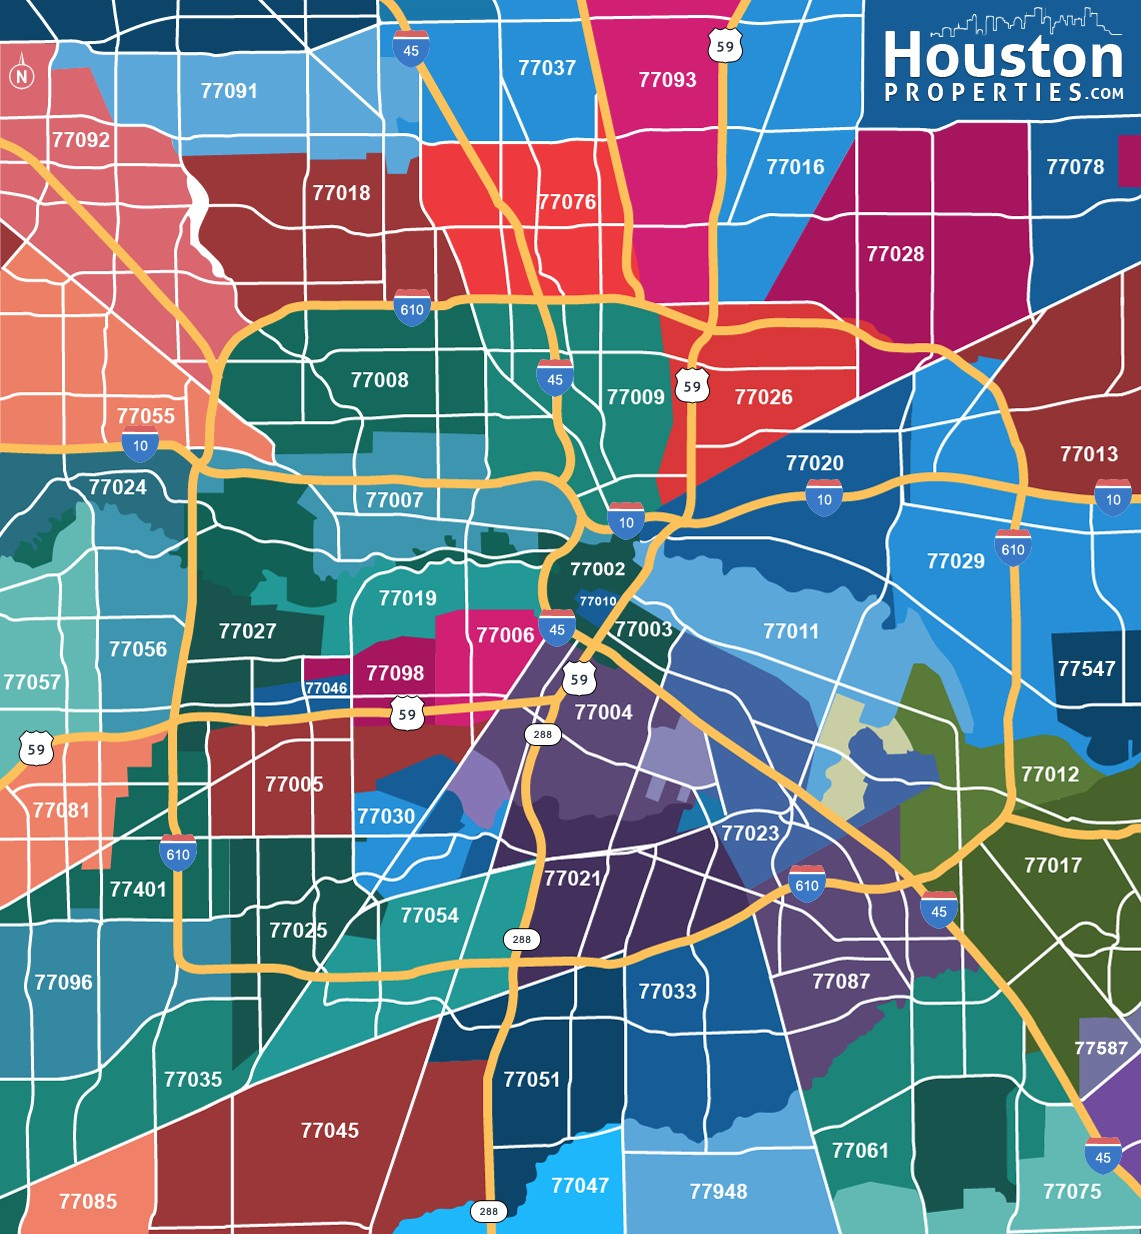 2019 Update: Houston Texas Zip Code Map | Houstonproperties - Show Me Houston Texas On The Map